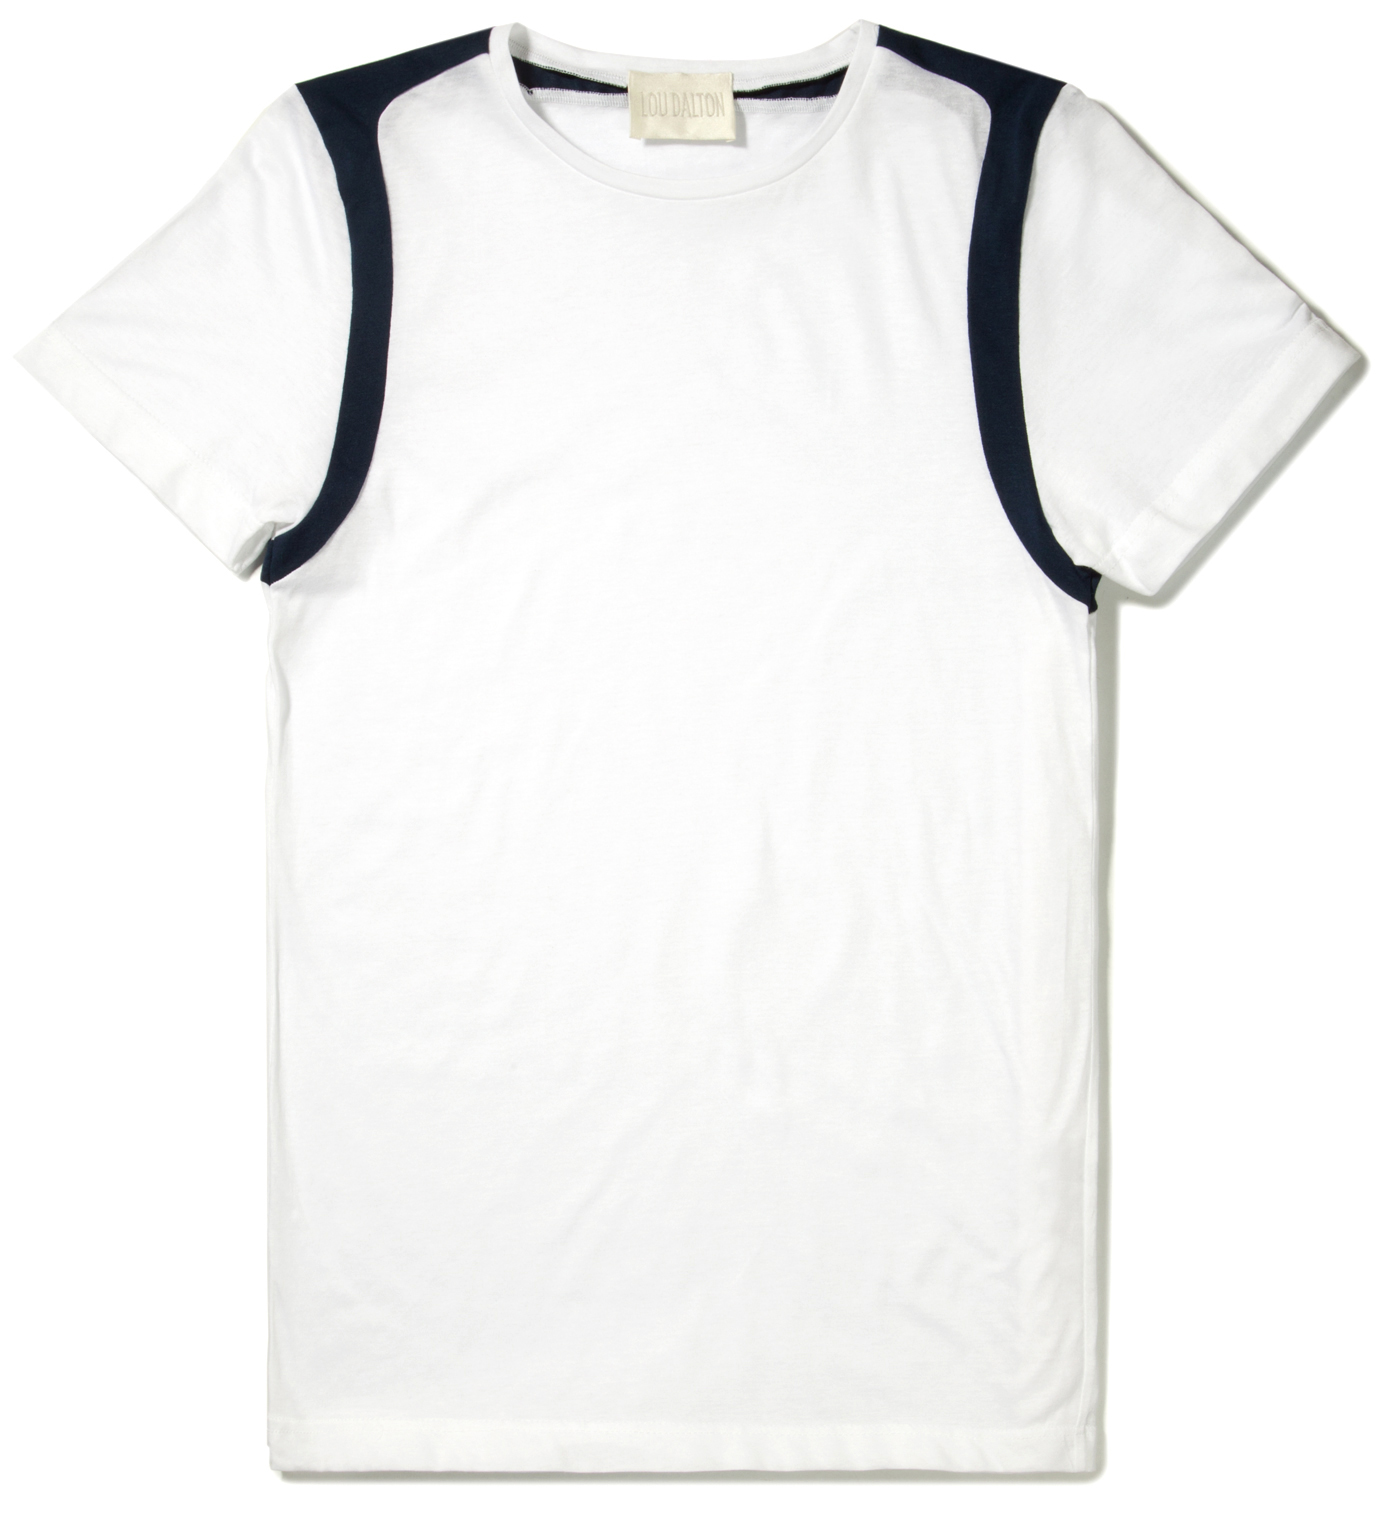 Lou Dalton White/Navy Strap Shoulder T-Shirt